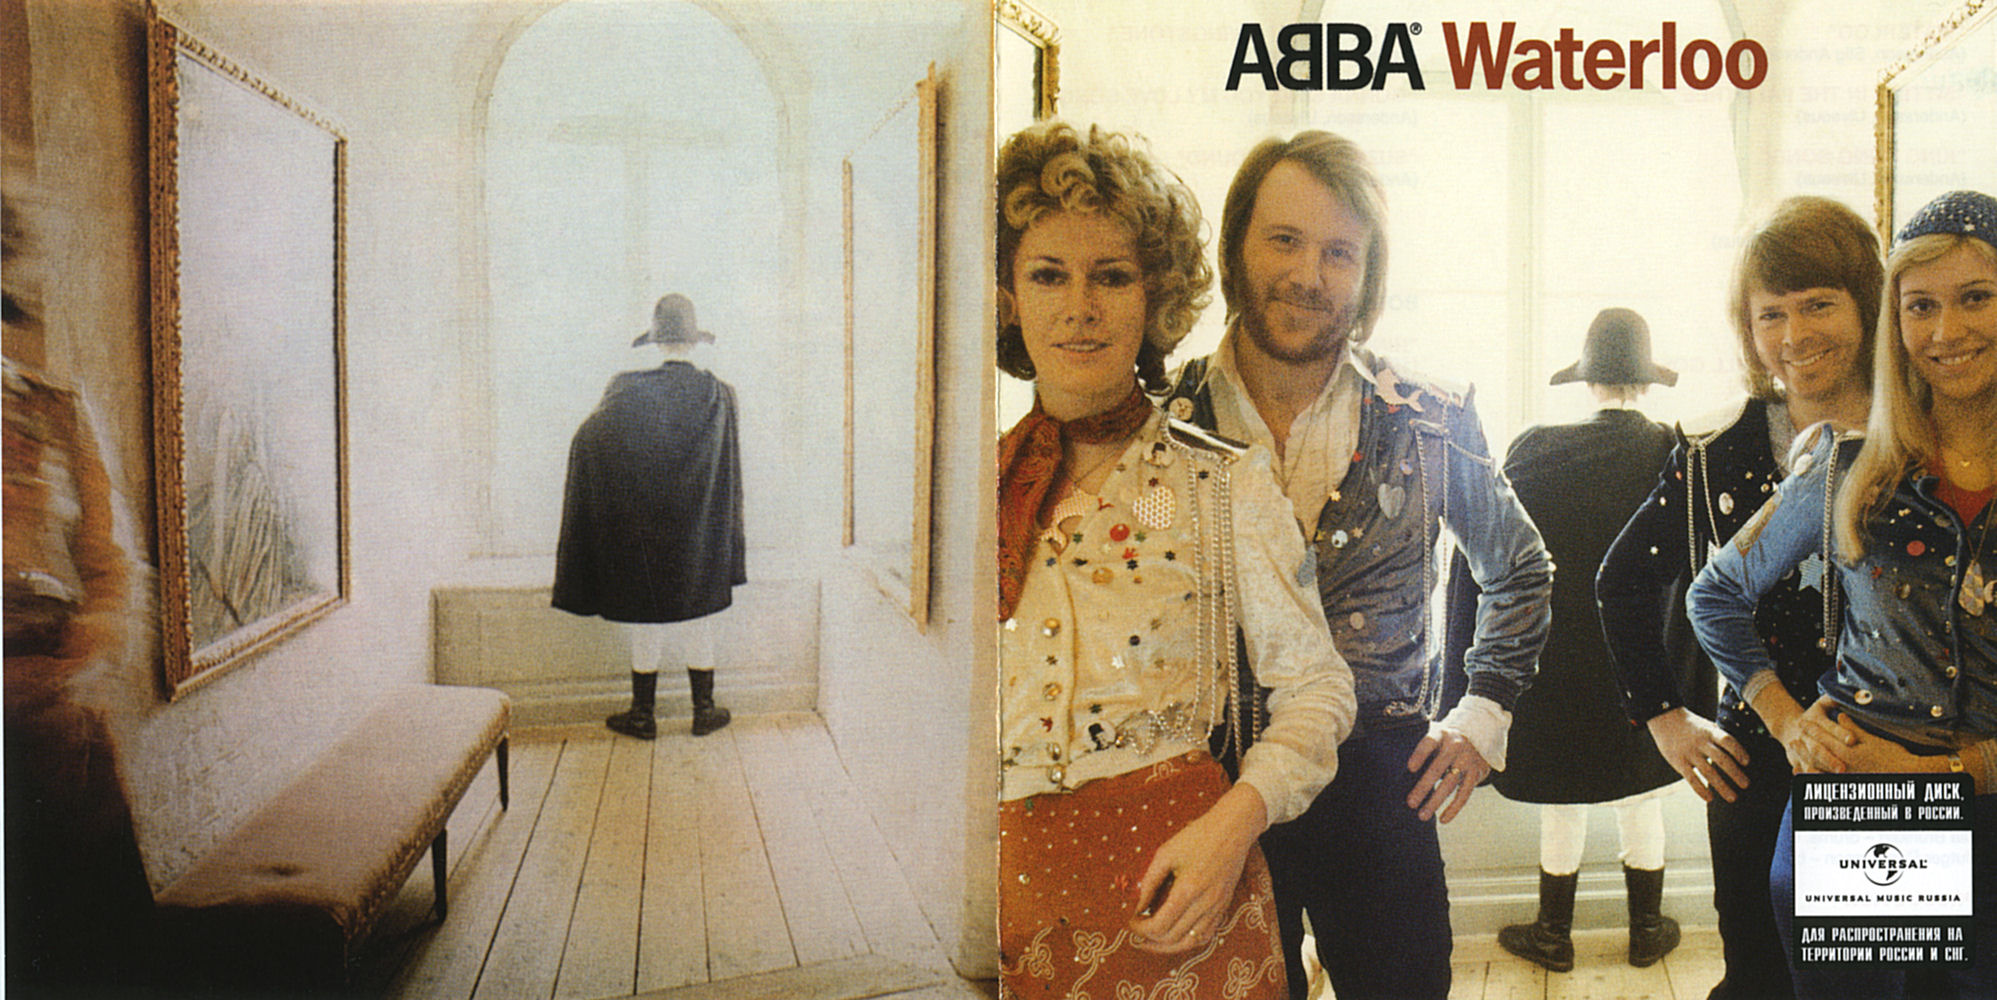 www.getabba.com - ABBA CD Collection